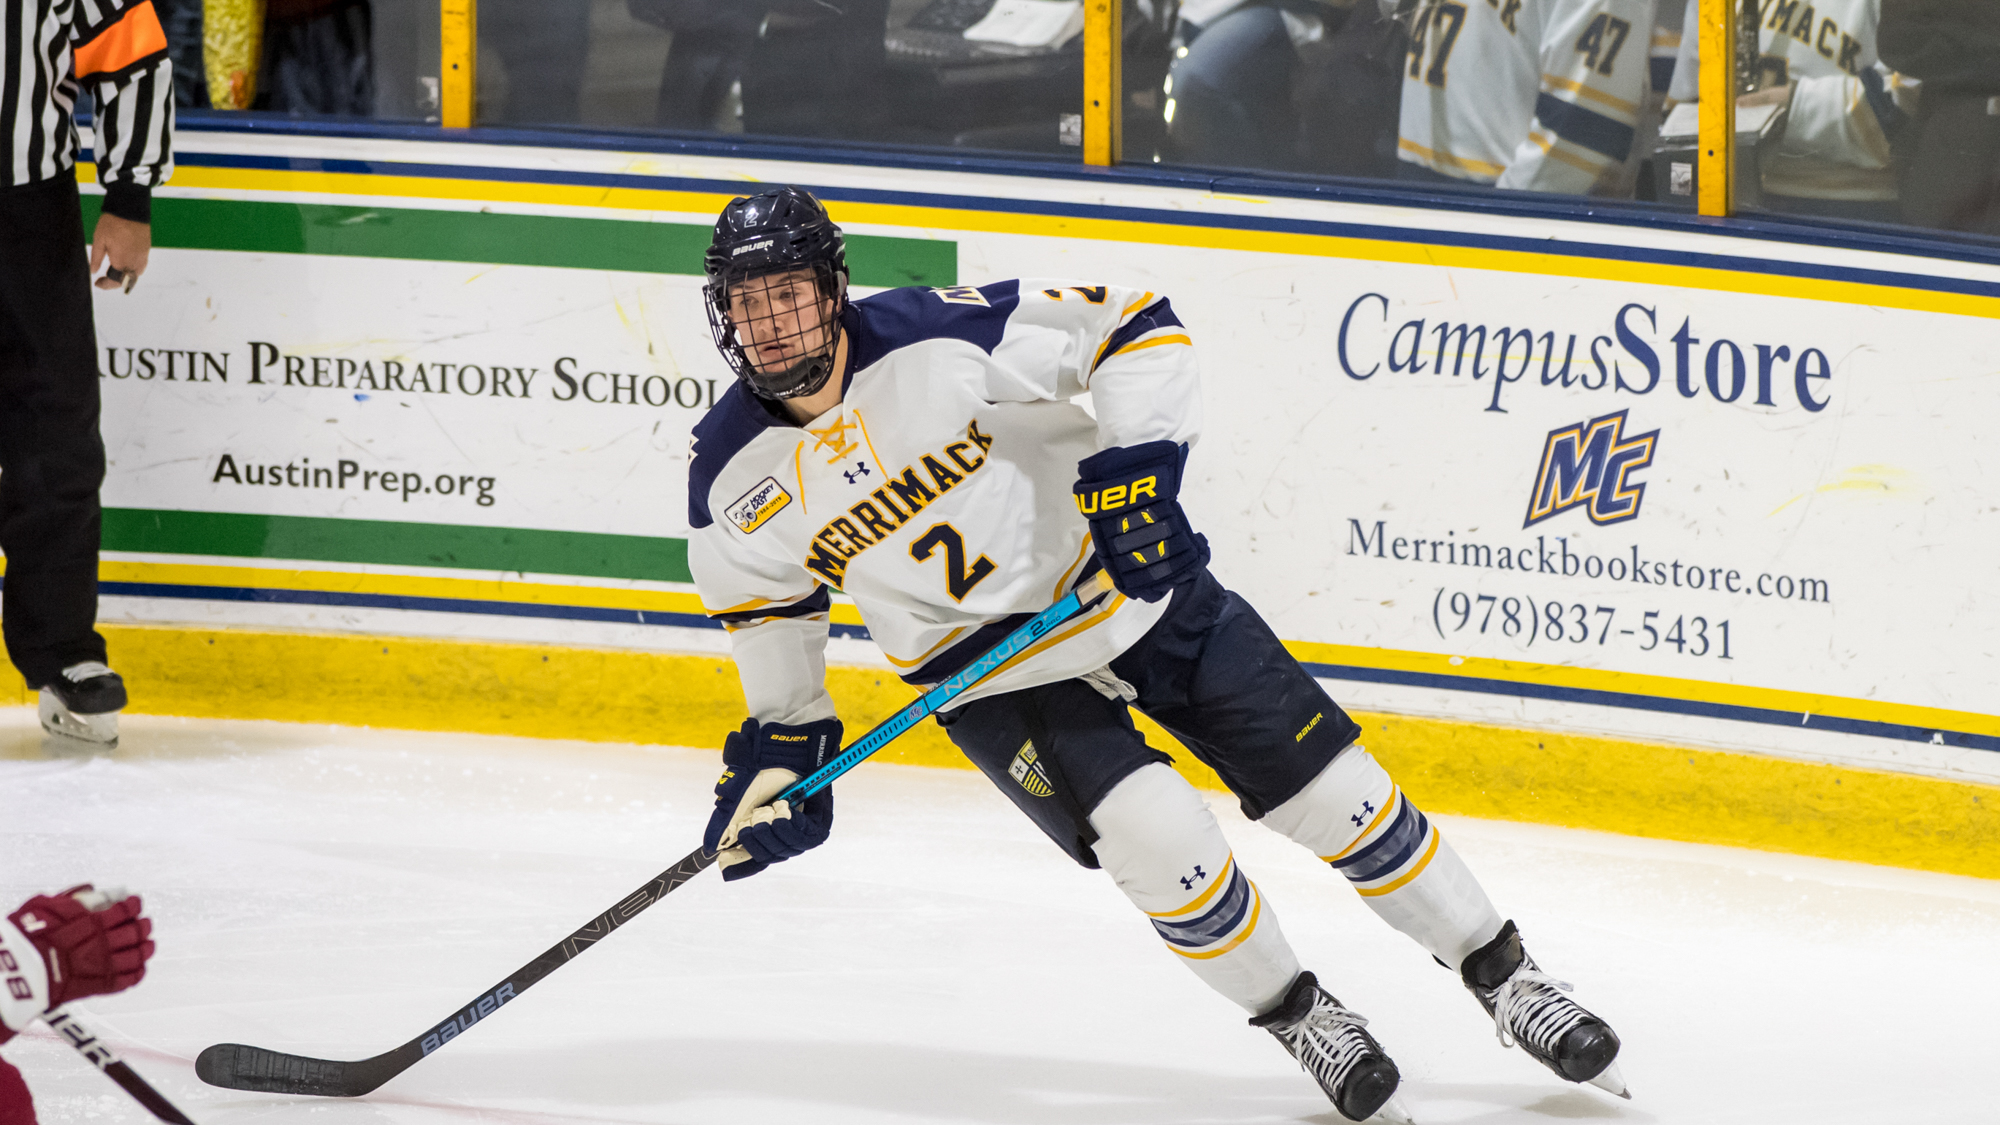 Ryan Cook - Men's Ice Hockey - Merrimack College Athletics